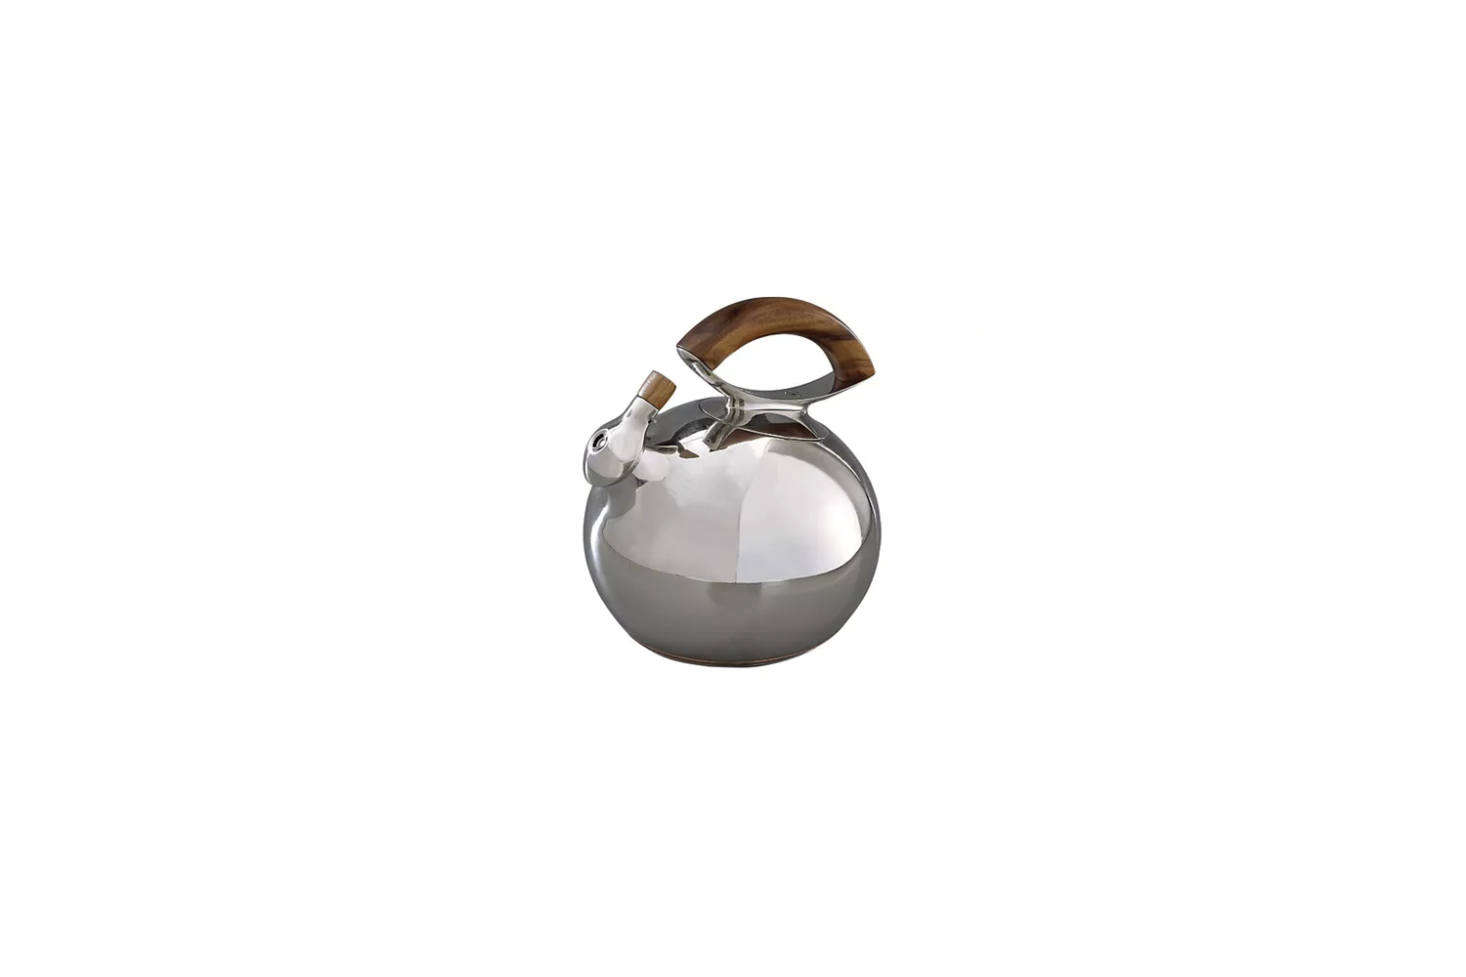 The Nambé Gourmet Bulbo Tea Kettle with a wood handle is on sale for $5 at Macy&#8